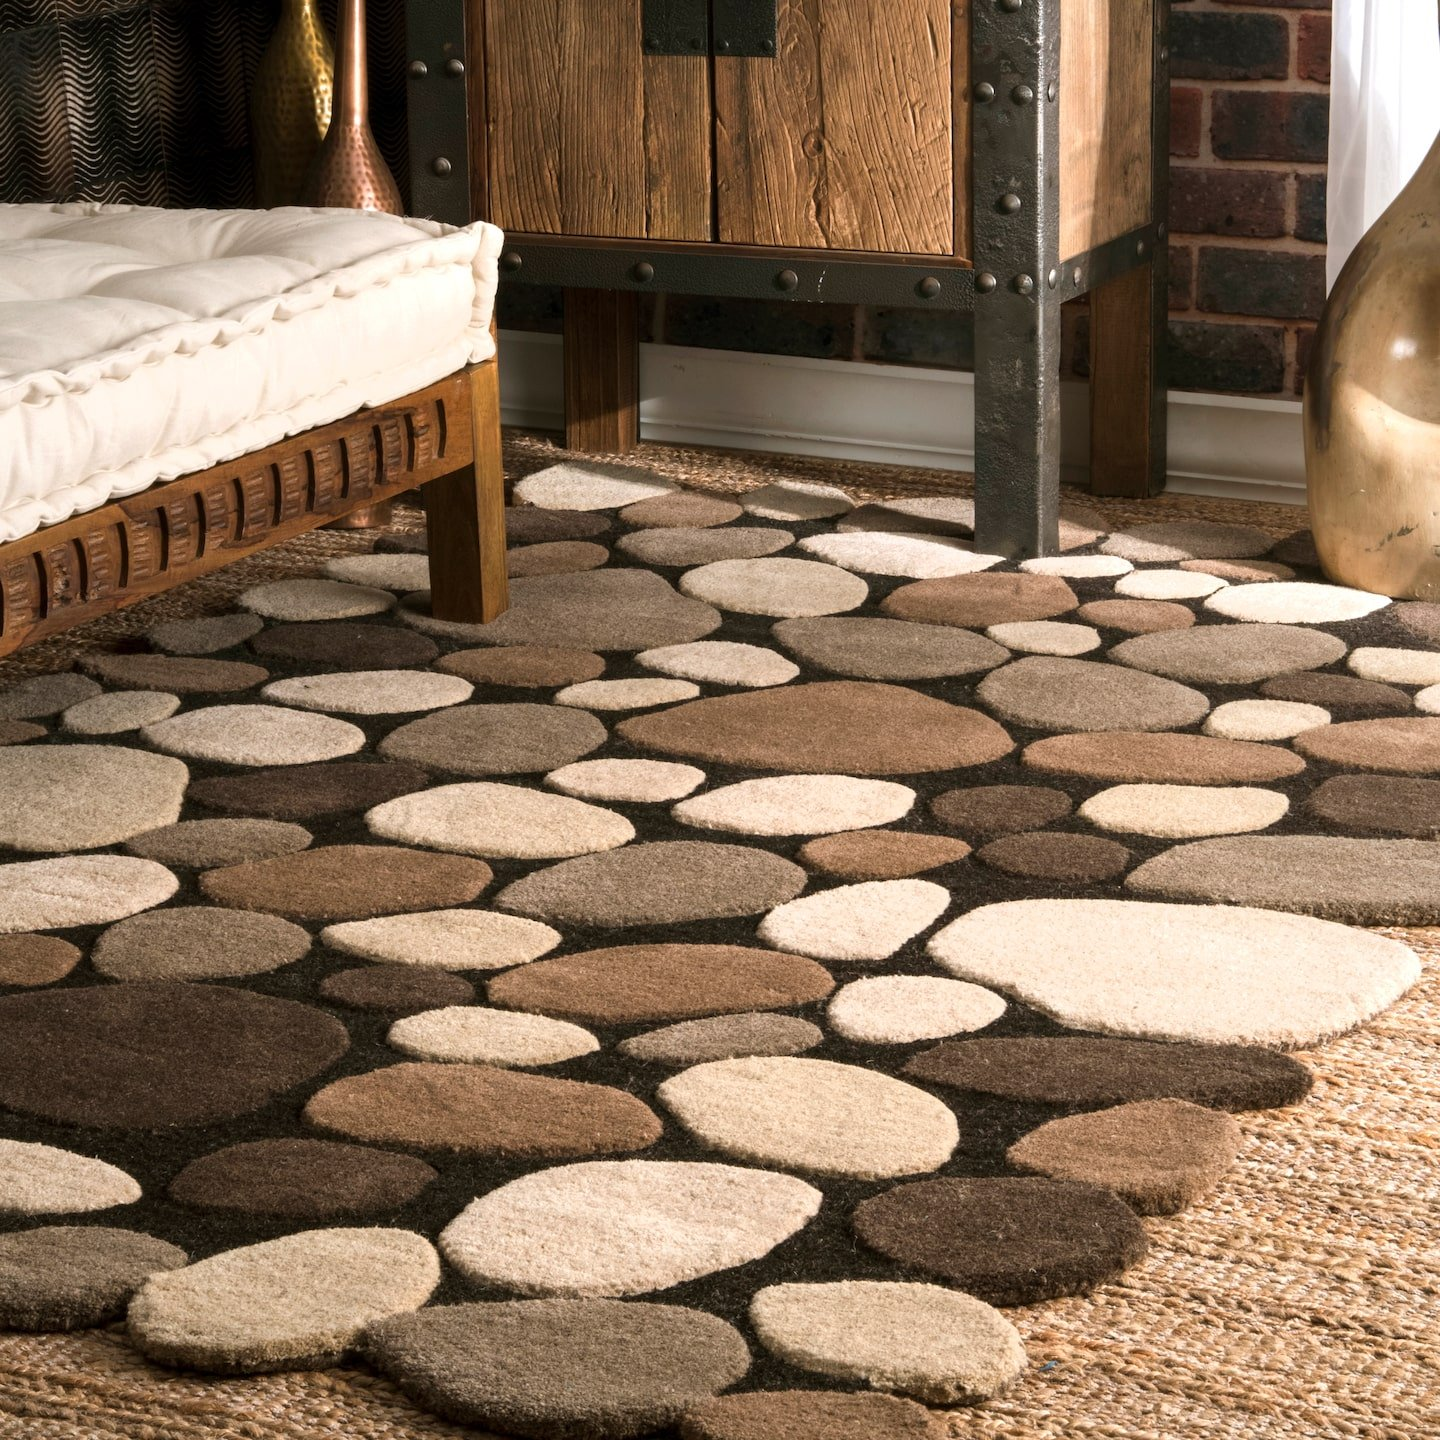 nuLOOM Contemporary Handmade Wool Pebbles Cobblestone Area Rugs, 2' x 3', Natural